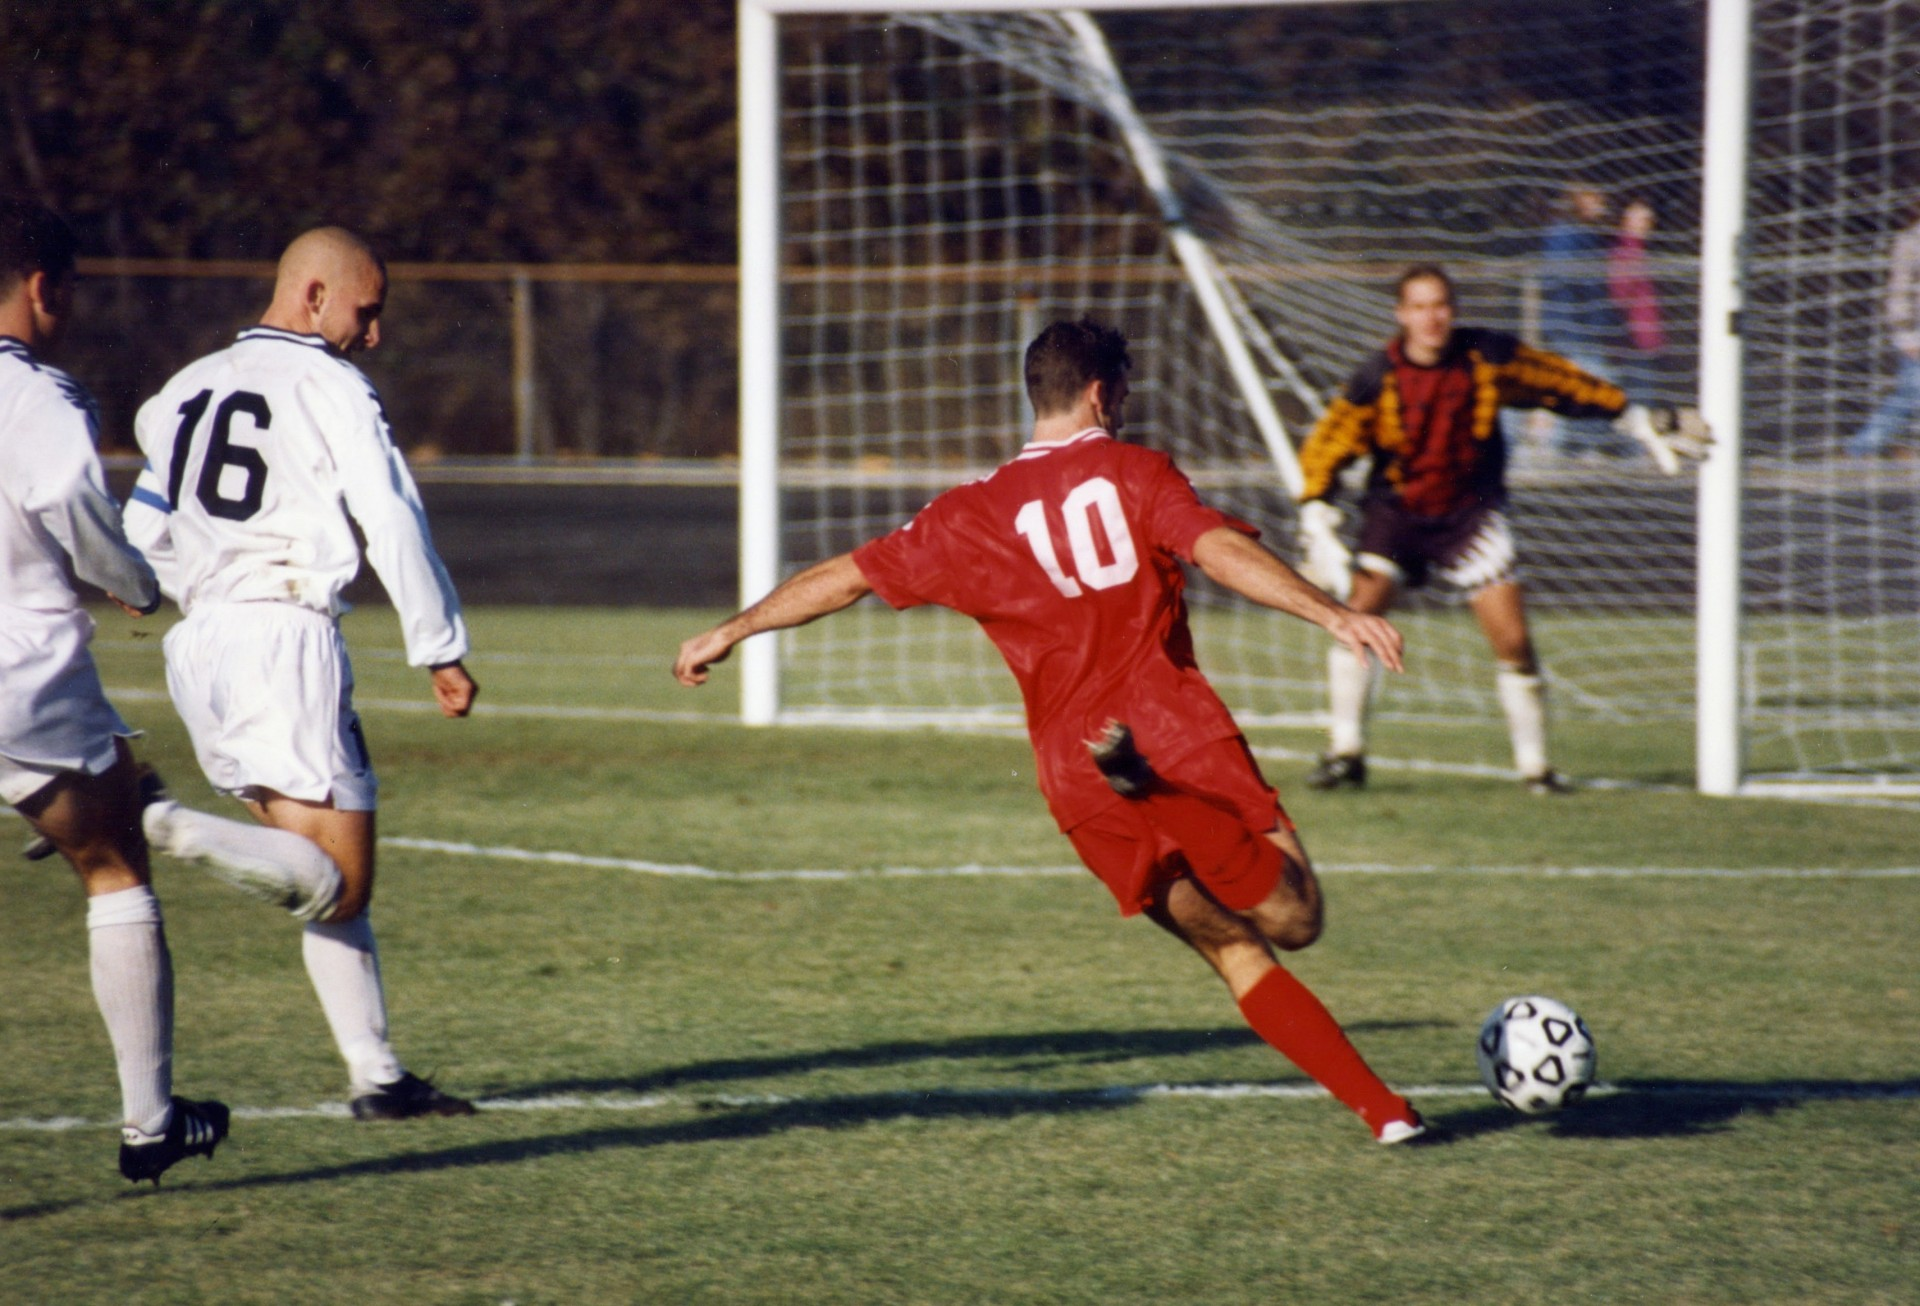 004 Soccer Vs Football Compare And Contrast Essay Example Iu 1996 Excellent 1920